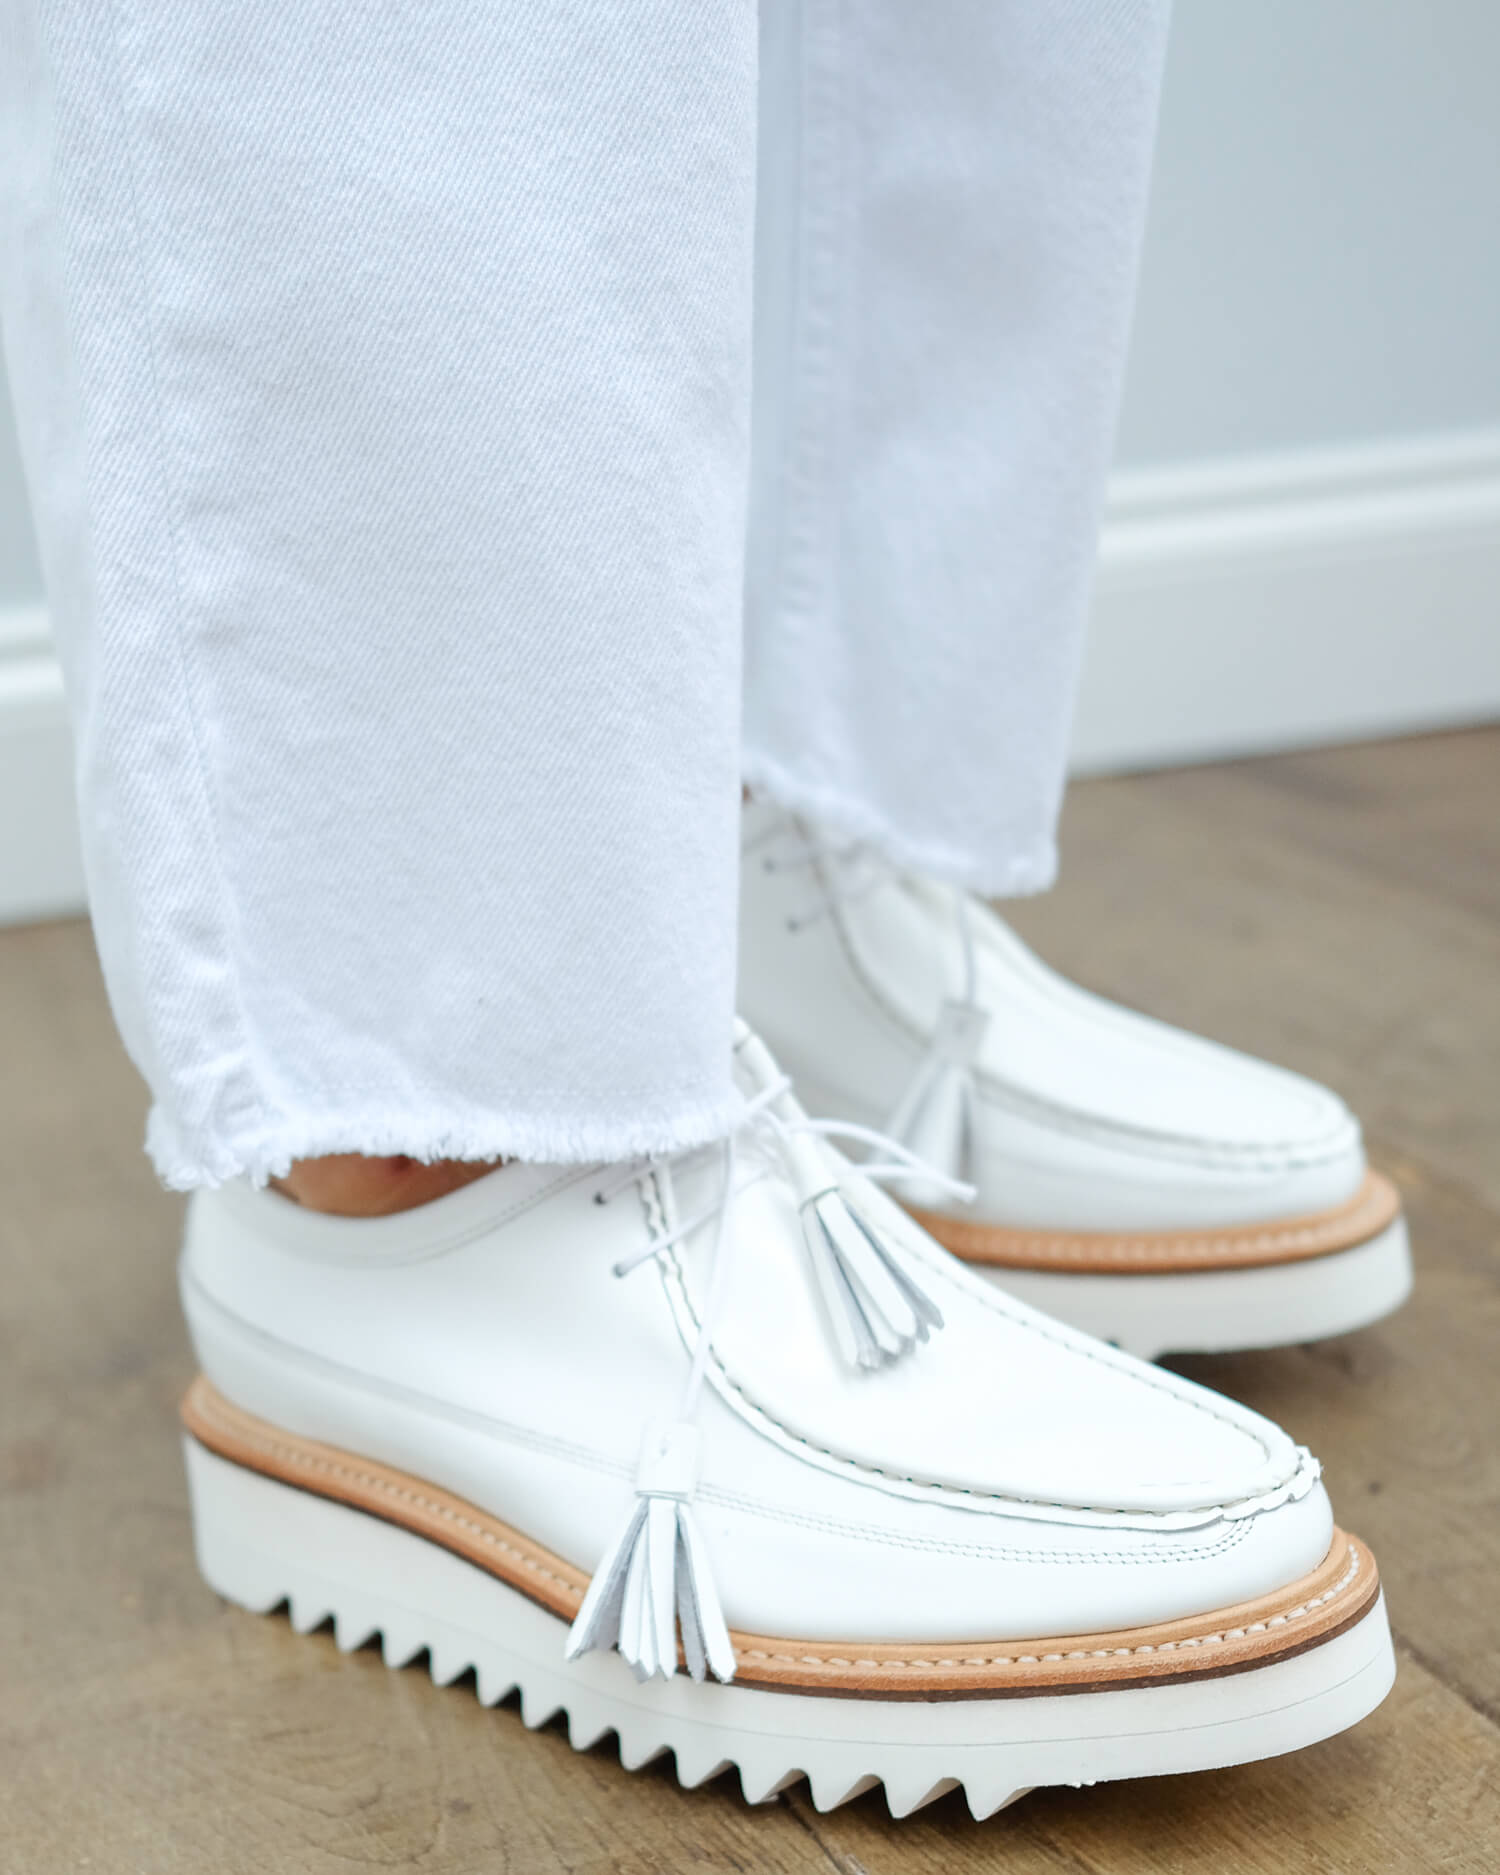 Grenson Beryl derby in white rub